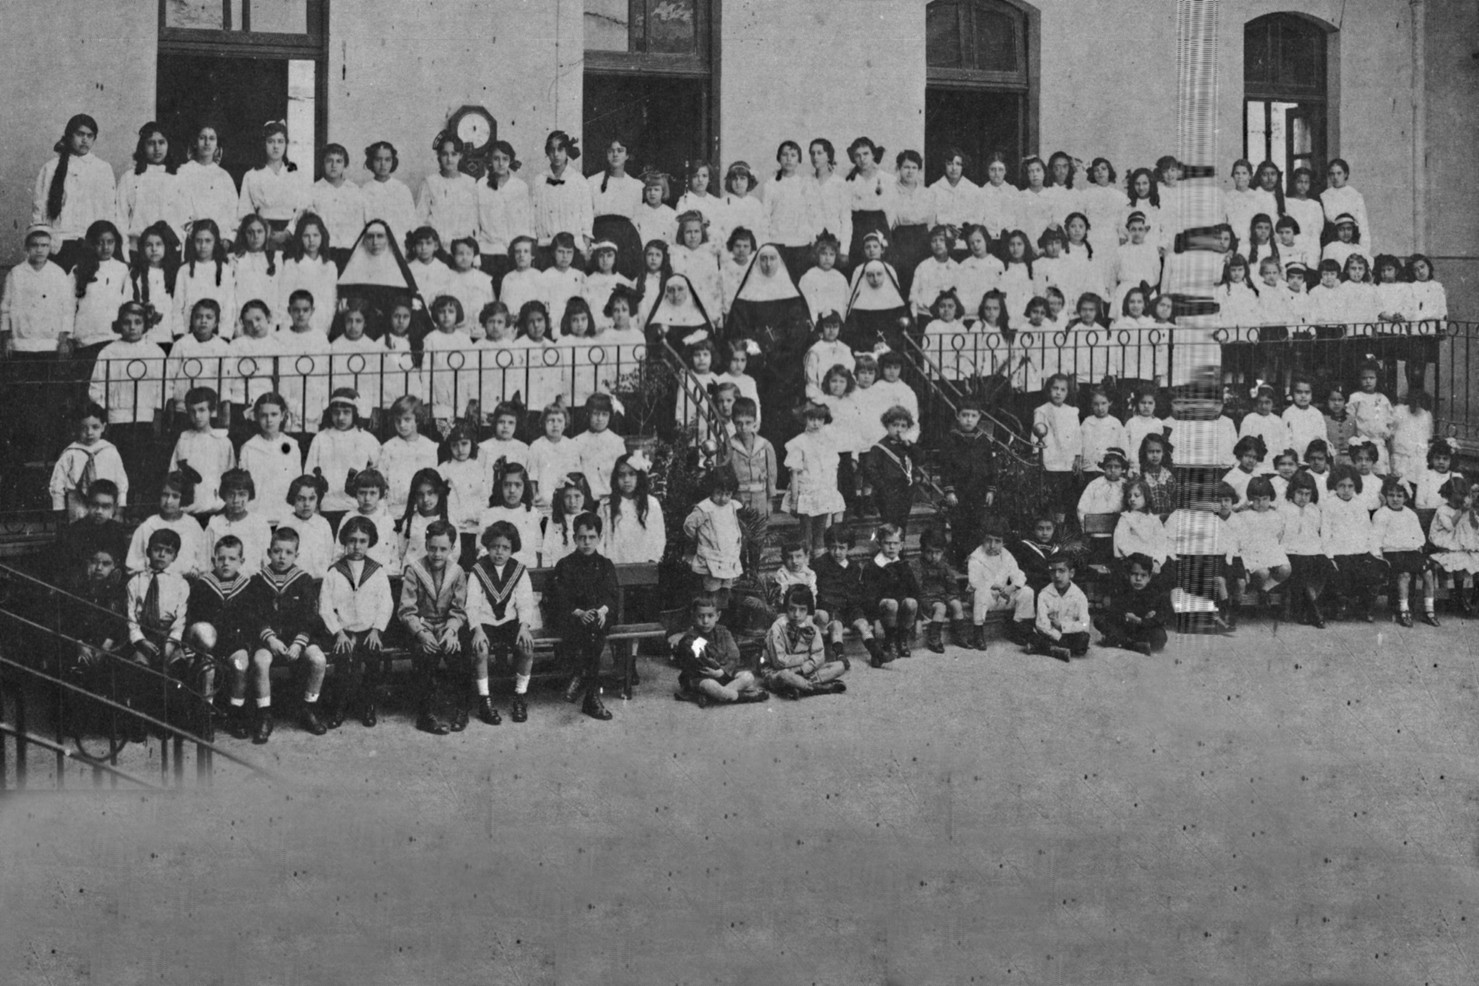 In 1905, four Sisters were sent by the Reverend Mother Madeleine Chollet to establish Incarnate Word English Academy in Mexico City, as a private secondary school for girls. Pictured are students and Sisters in 1917, just as persecution of the Church was beginning in Mexico.